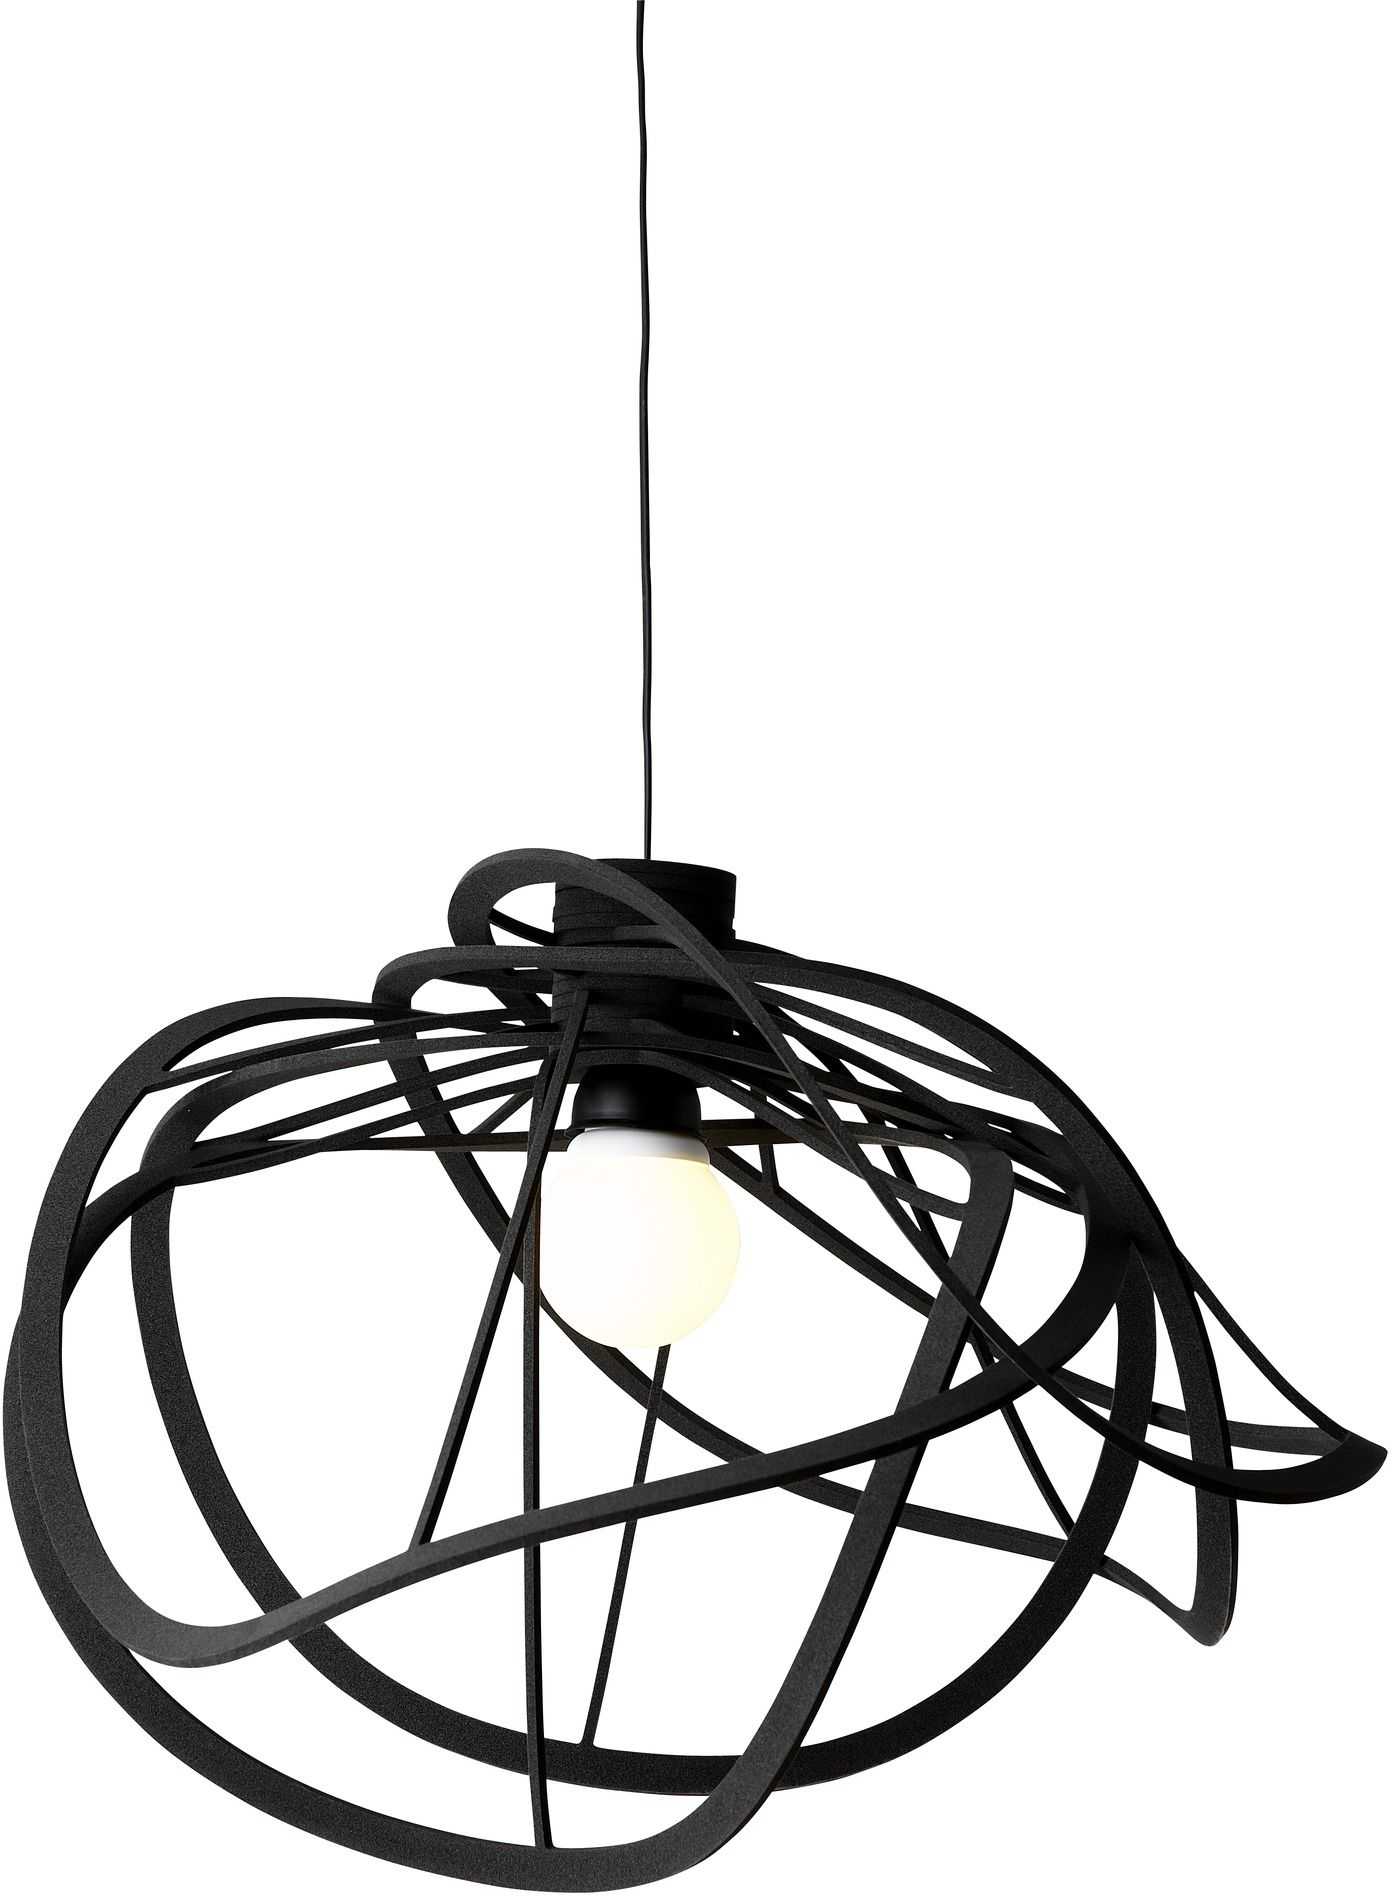 bloom ligne roset lighting pinterest luces. Black Bedroom Furniture Sets. Home Design Ideas